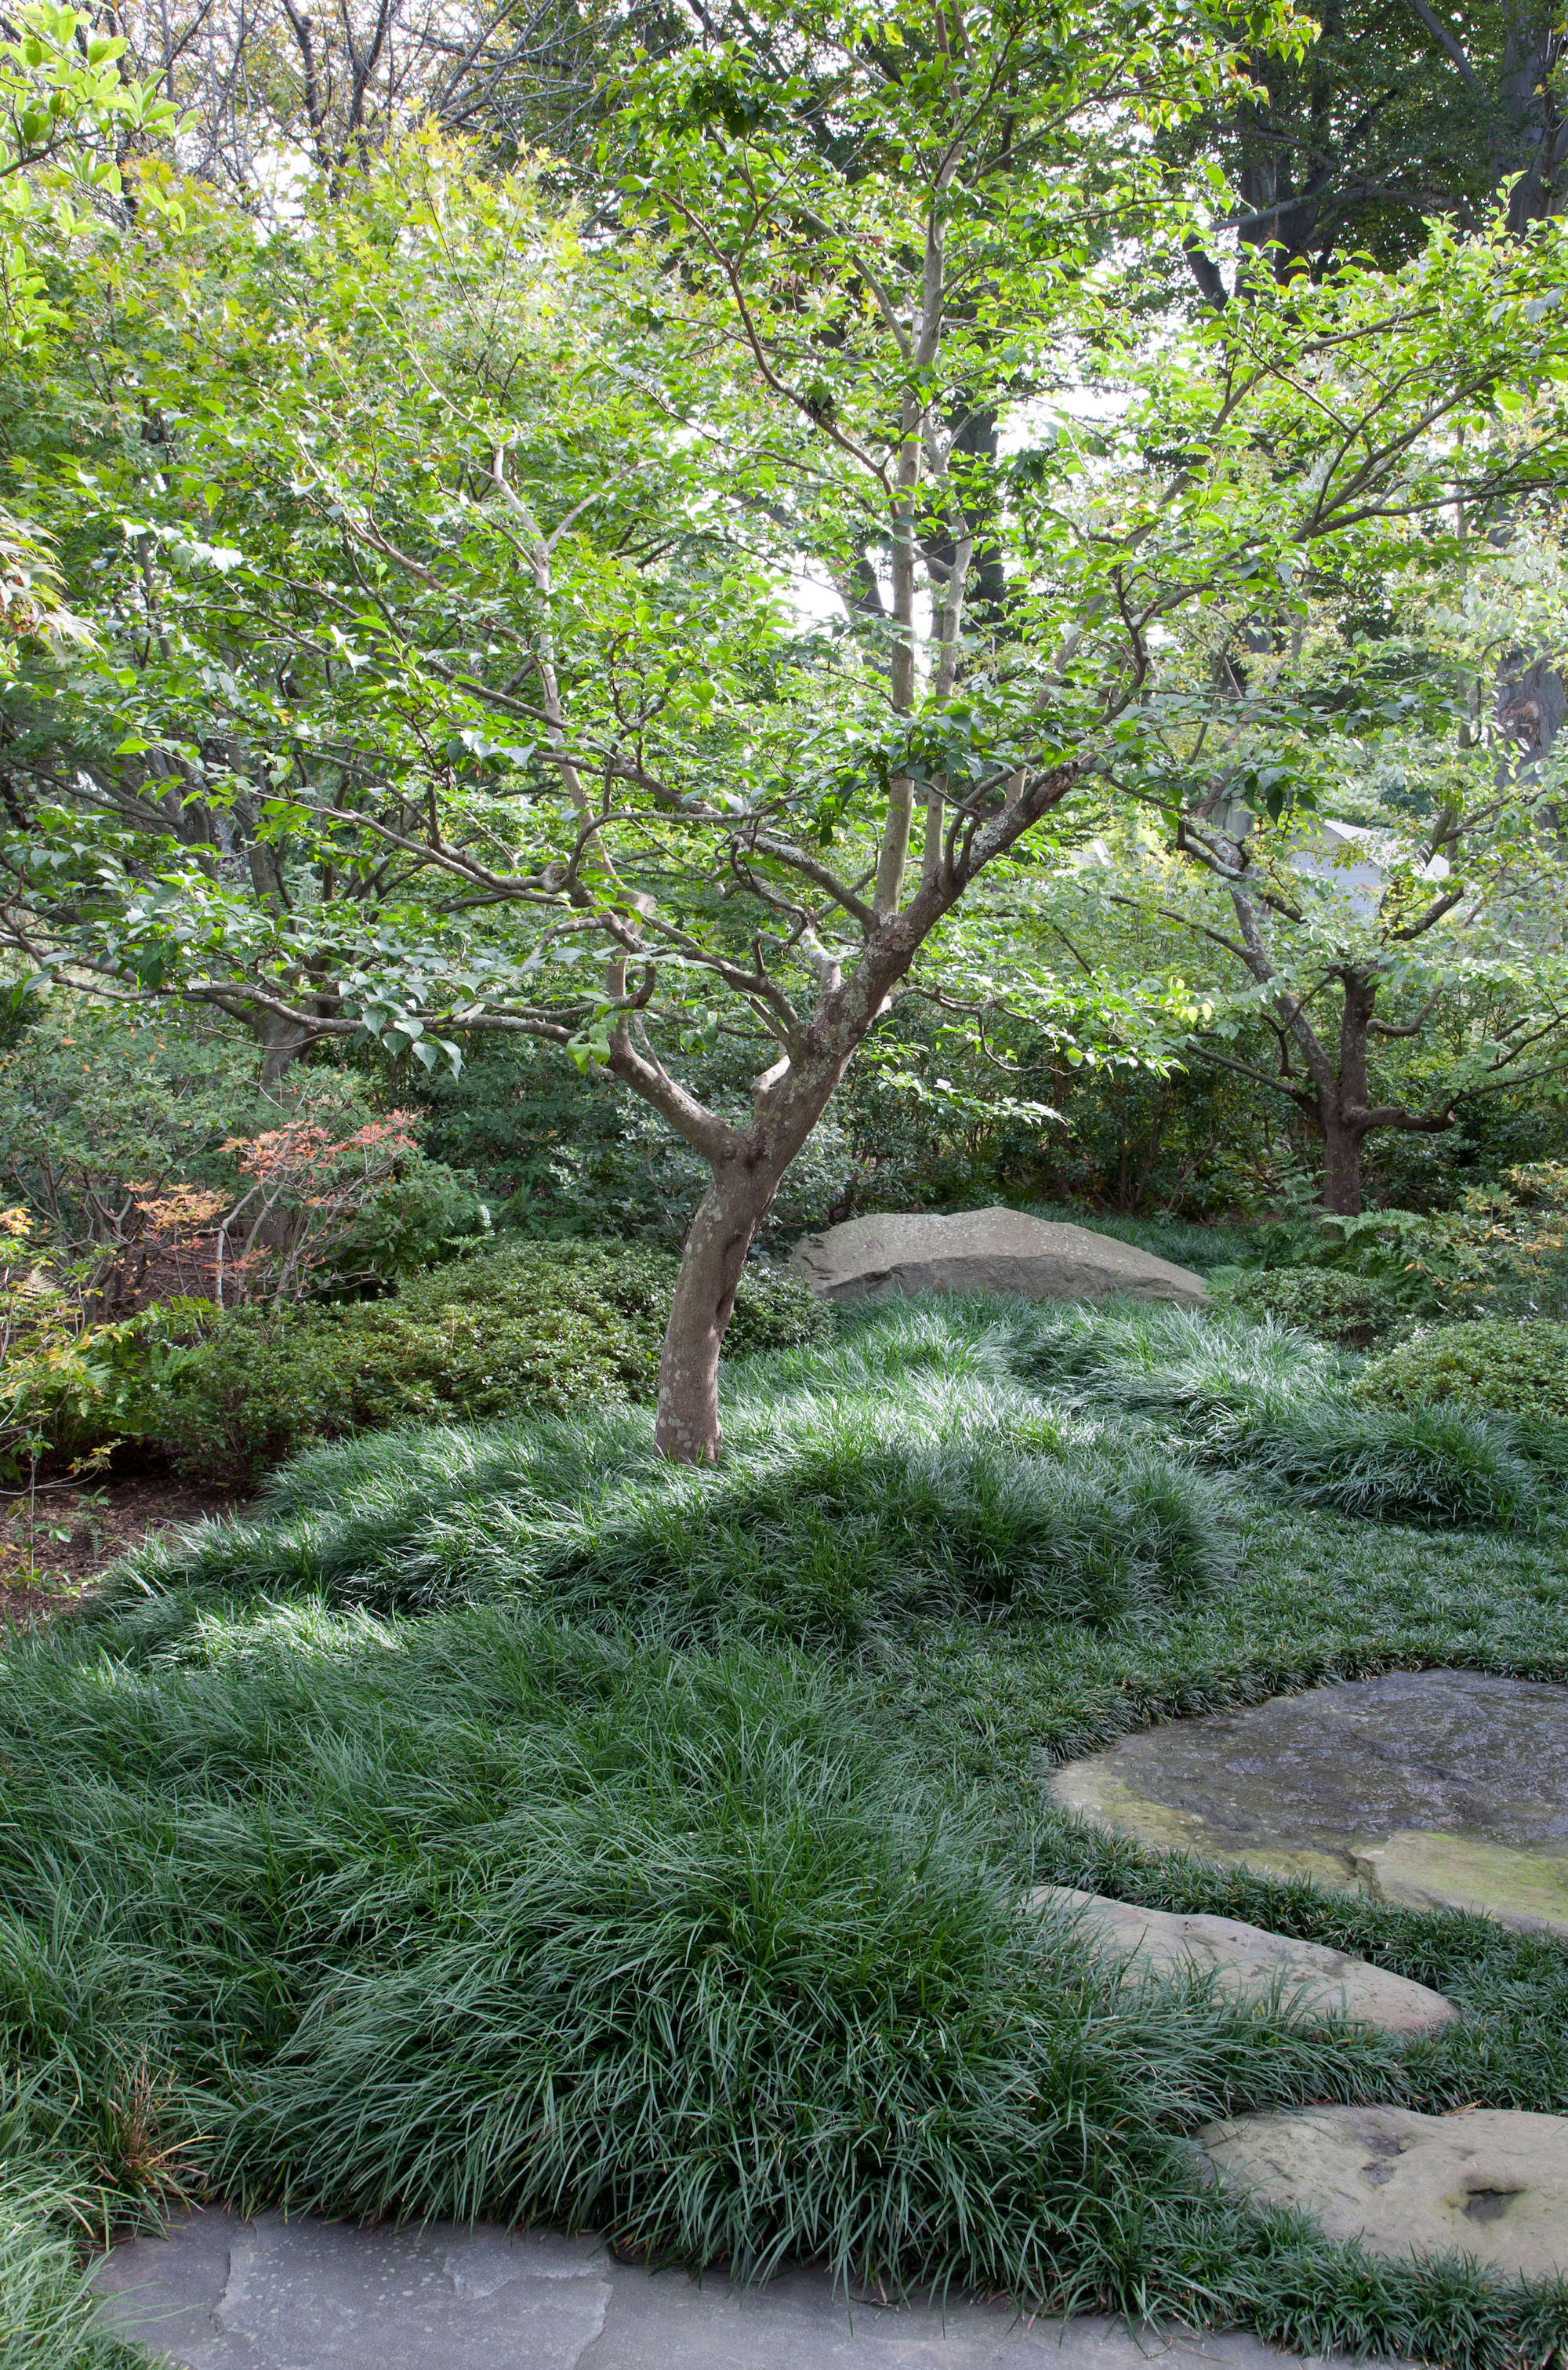 A Japanese snowbell tree (Styrax japonicus), surrounded by mondo grass, with clipped azaleas and a patch of enkianthus off to the left.